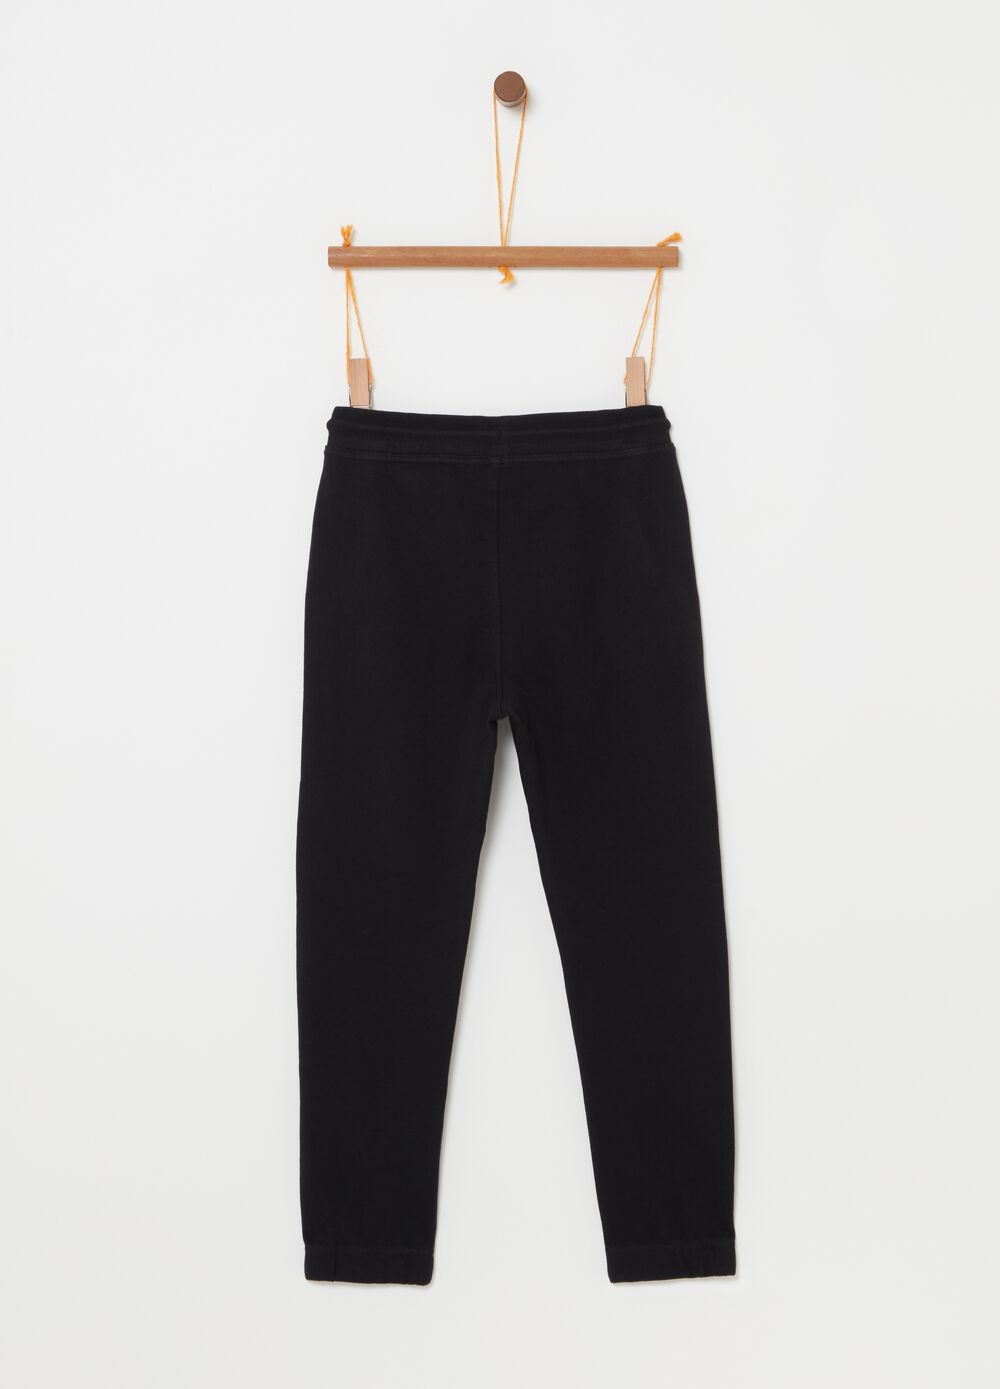 Trousers with elasticated waist and drawstring